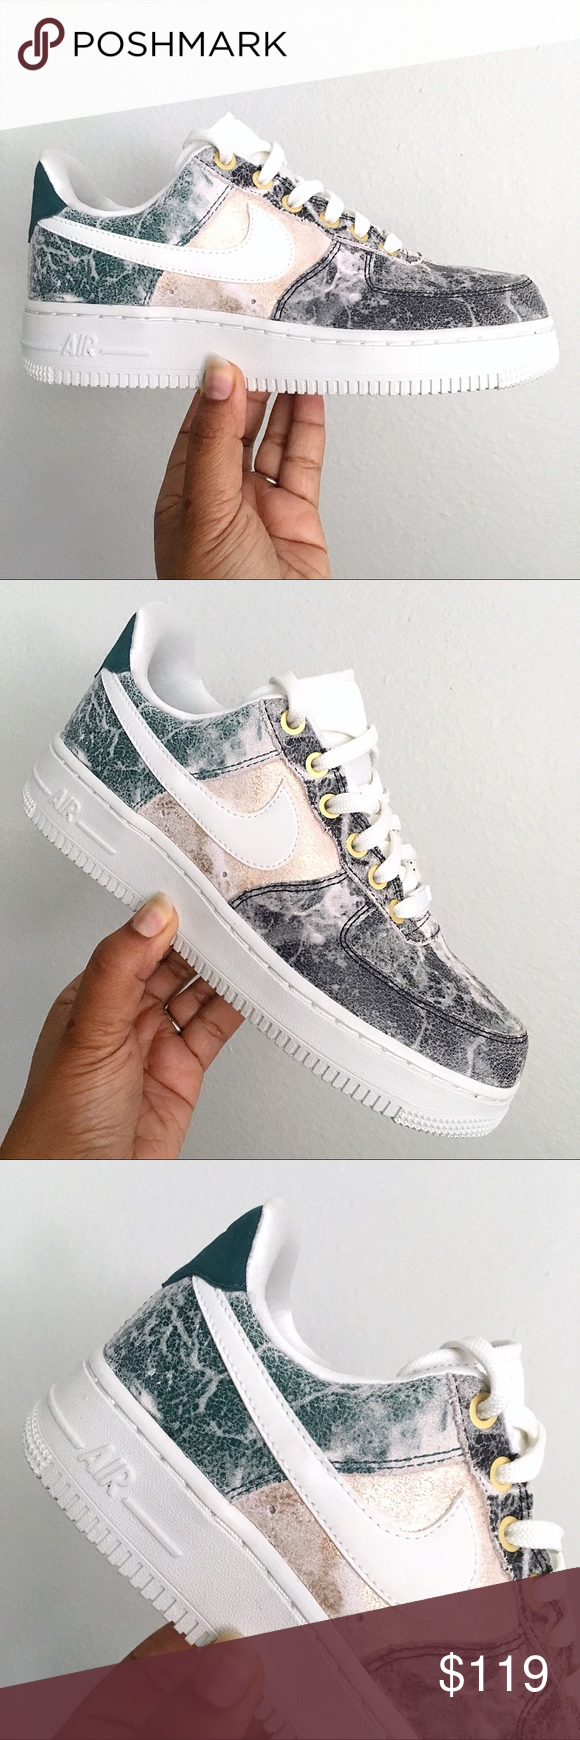 Nike Wmns Air Force 1 '07 LXX Low 'Summit White Oil Grey